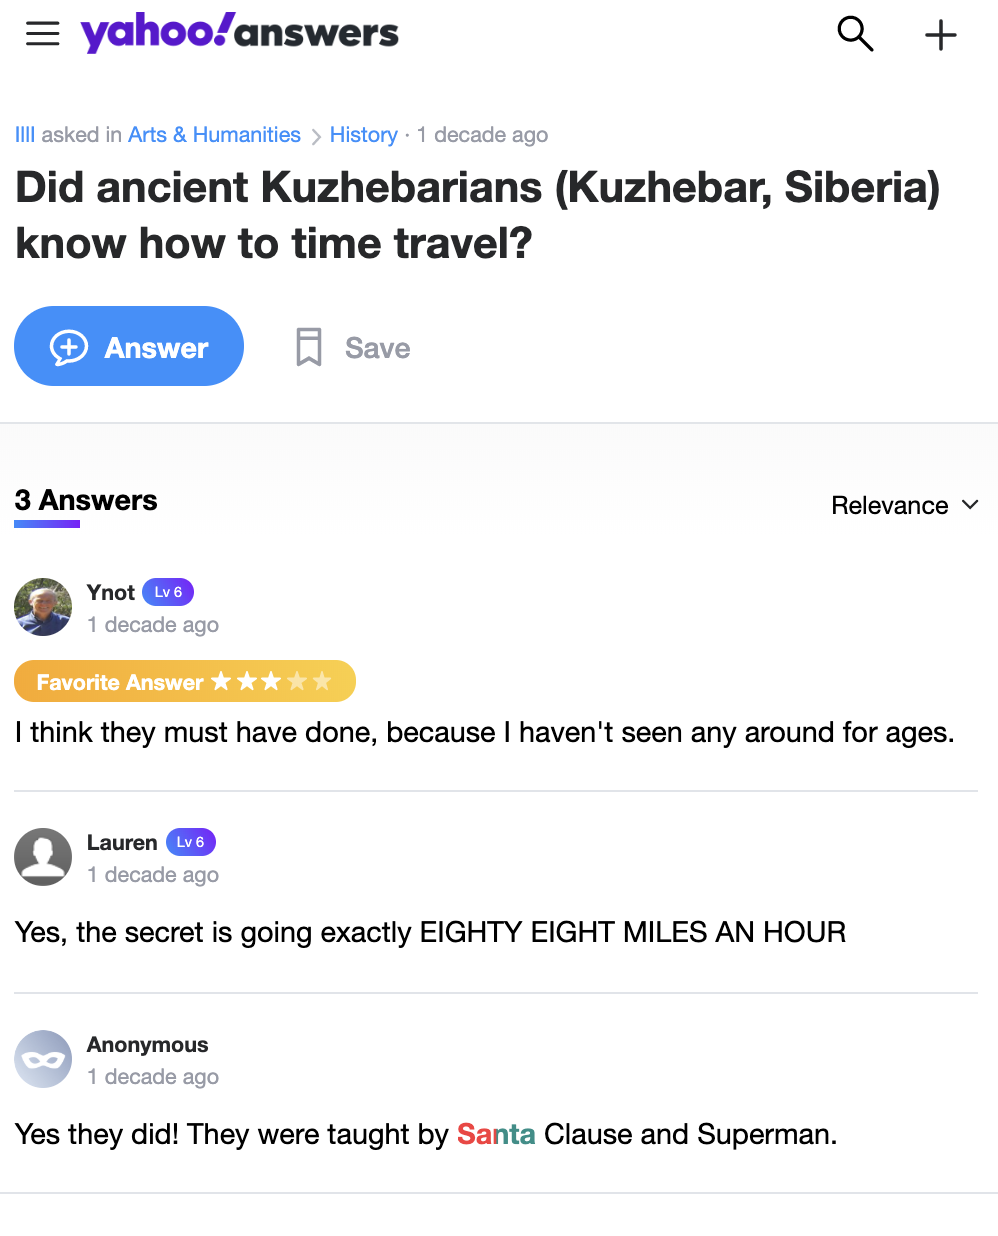 Kuzhebarians time travel